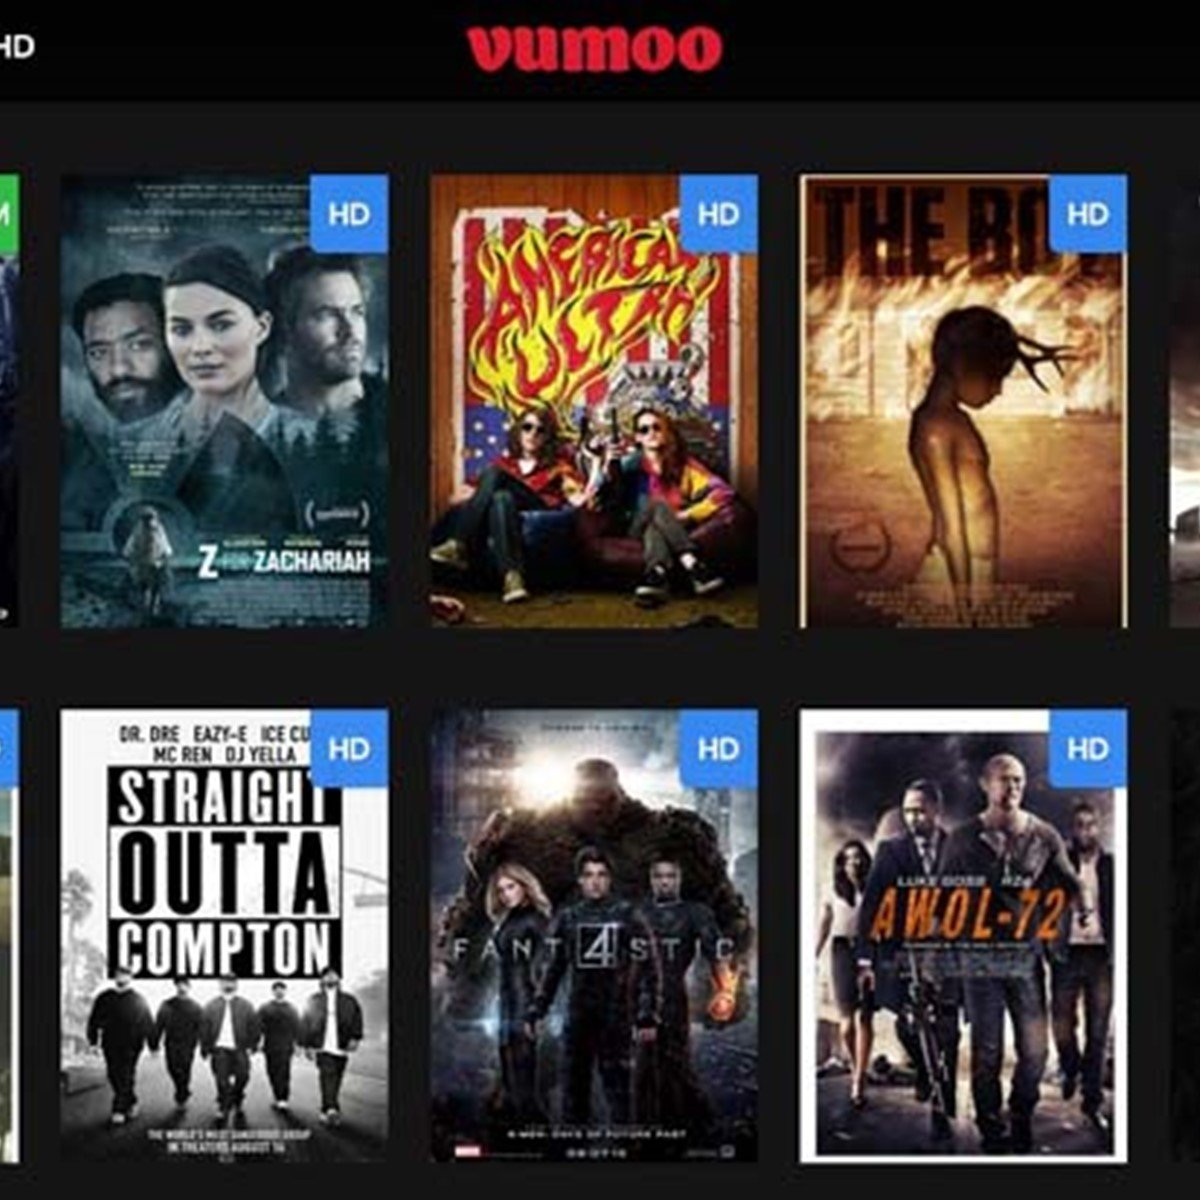 Download Free Movies Without Registration: Vumoo Alternatives And Similar Websites And Apps